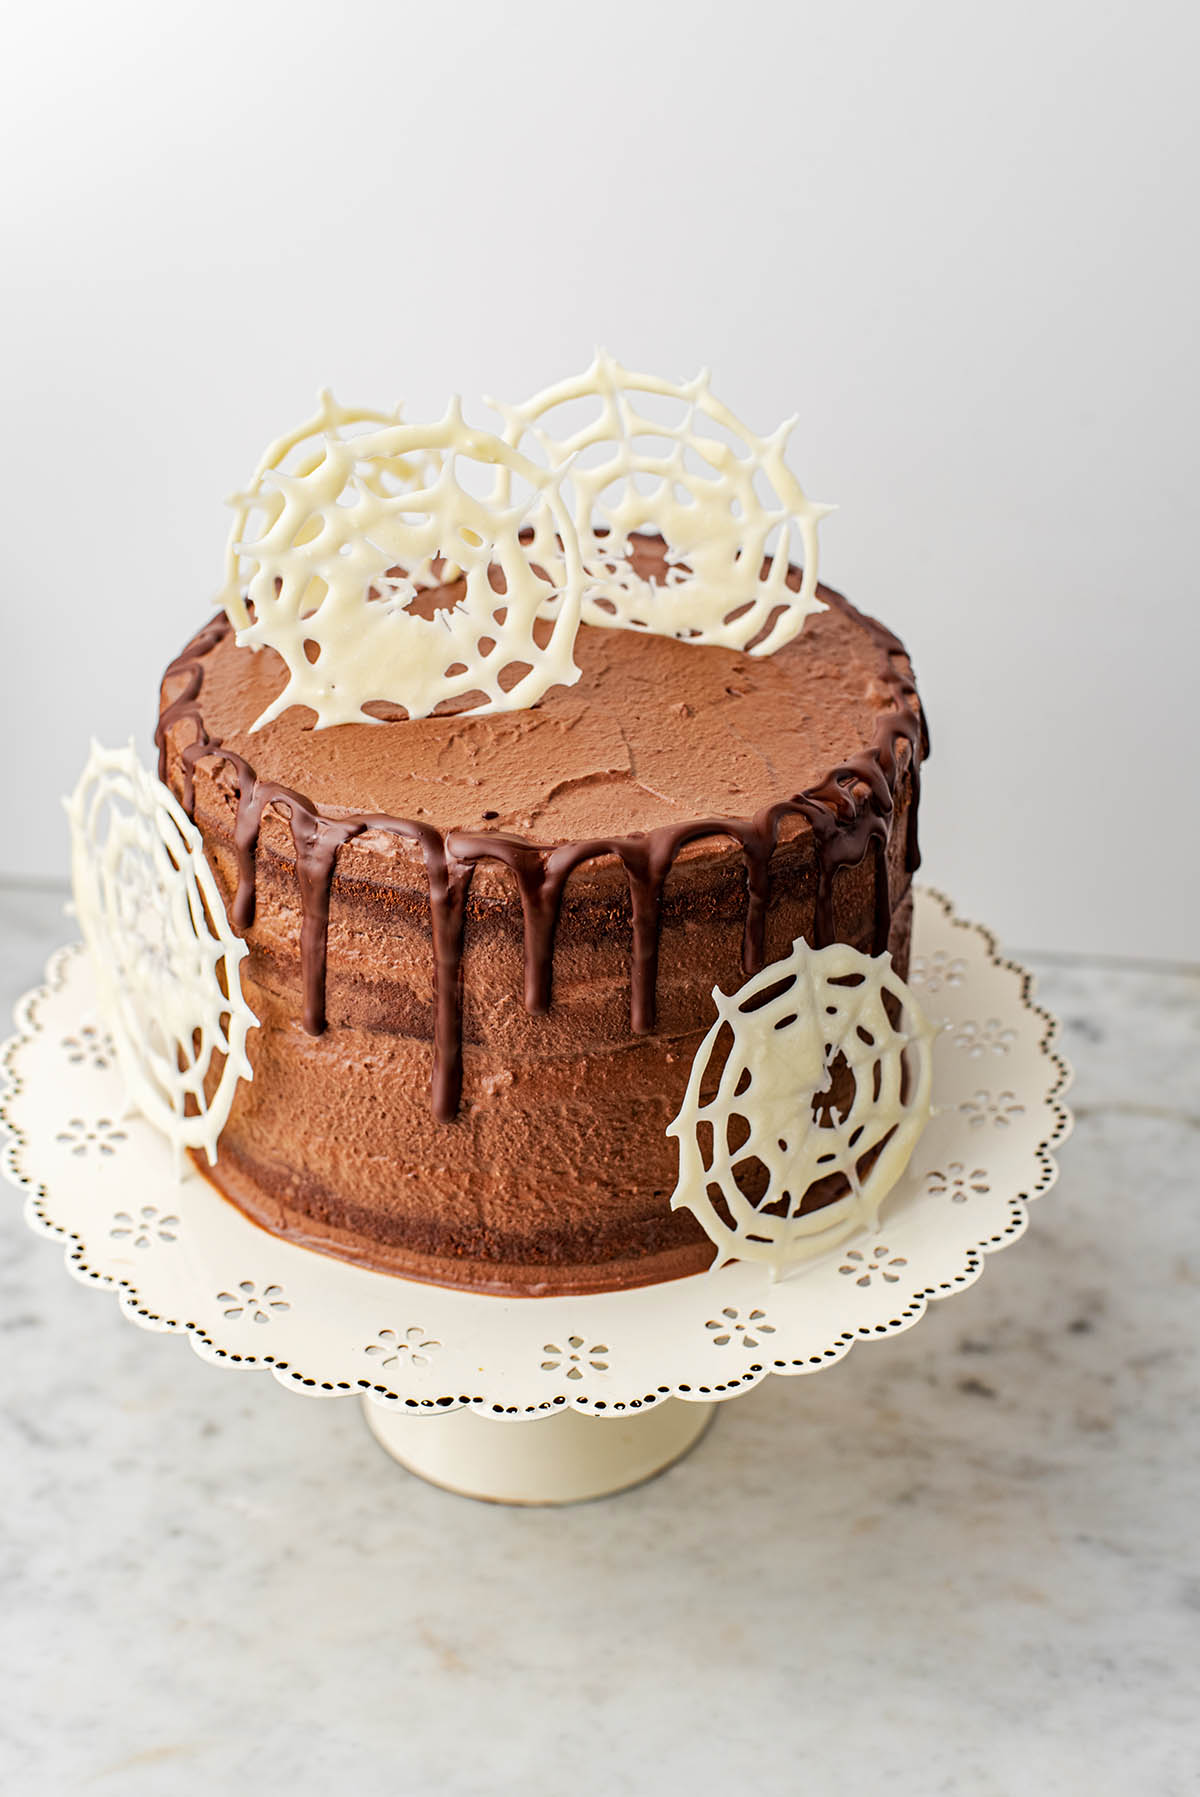 Chocolate cake with chocolate drip and white chocolate webs.